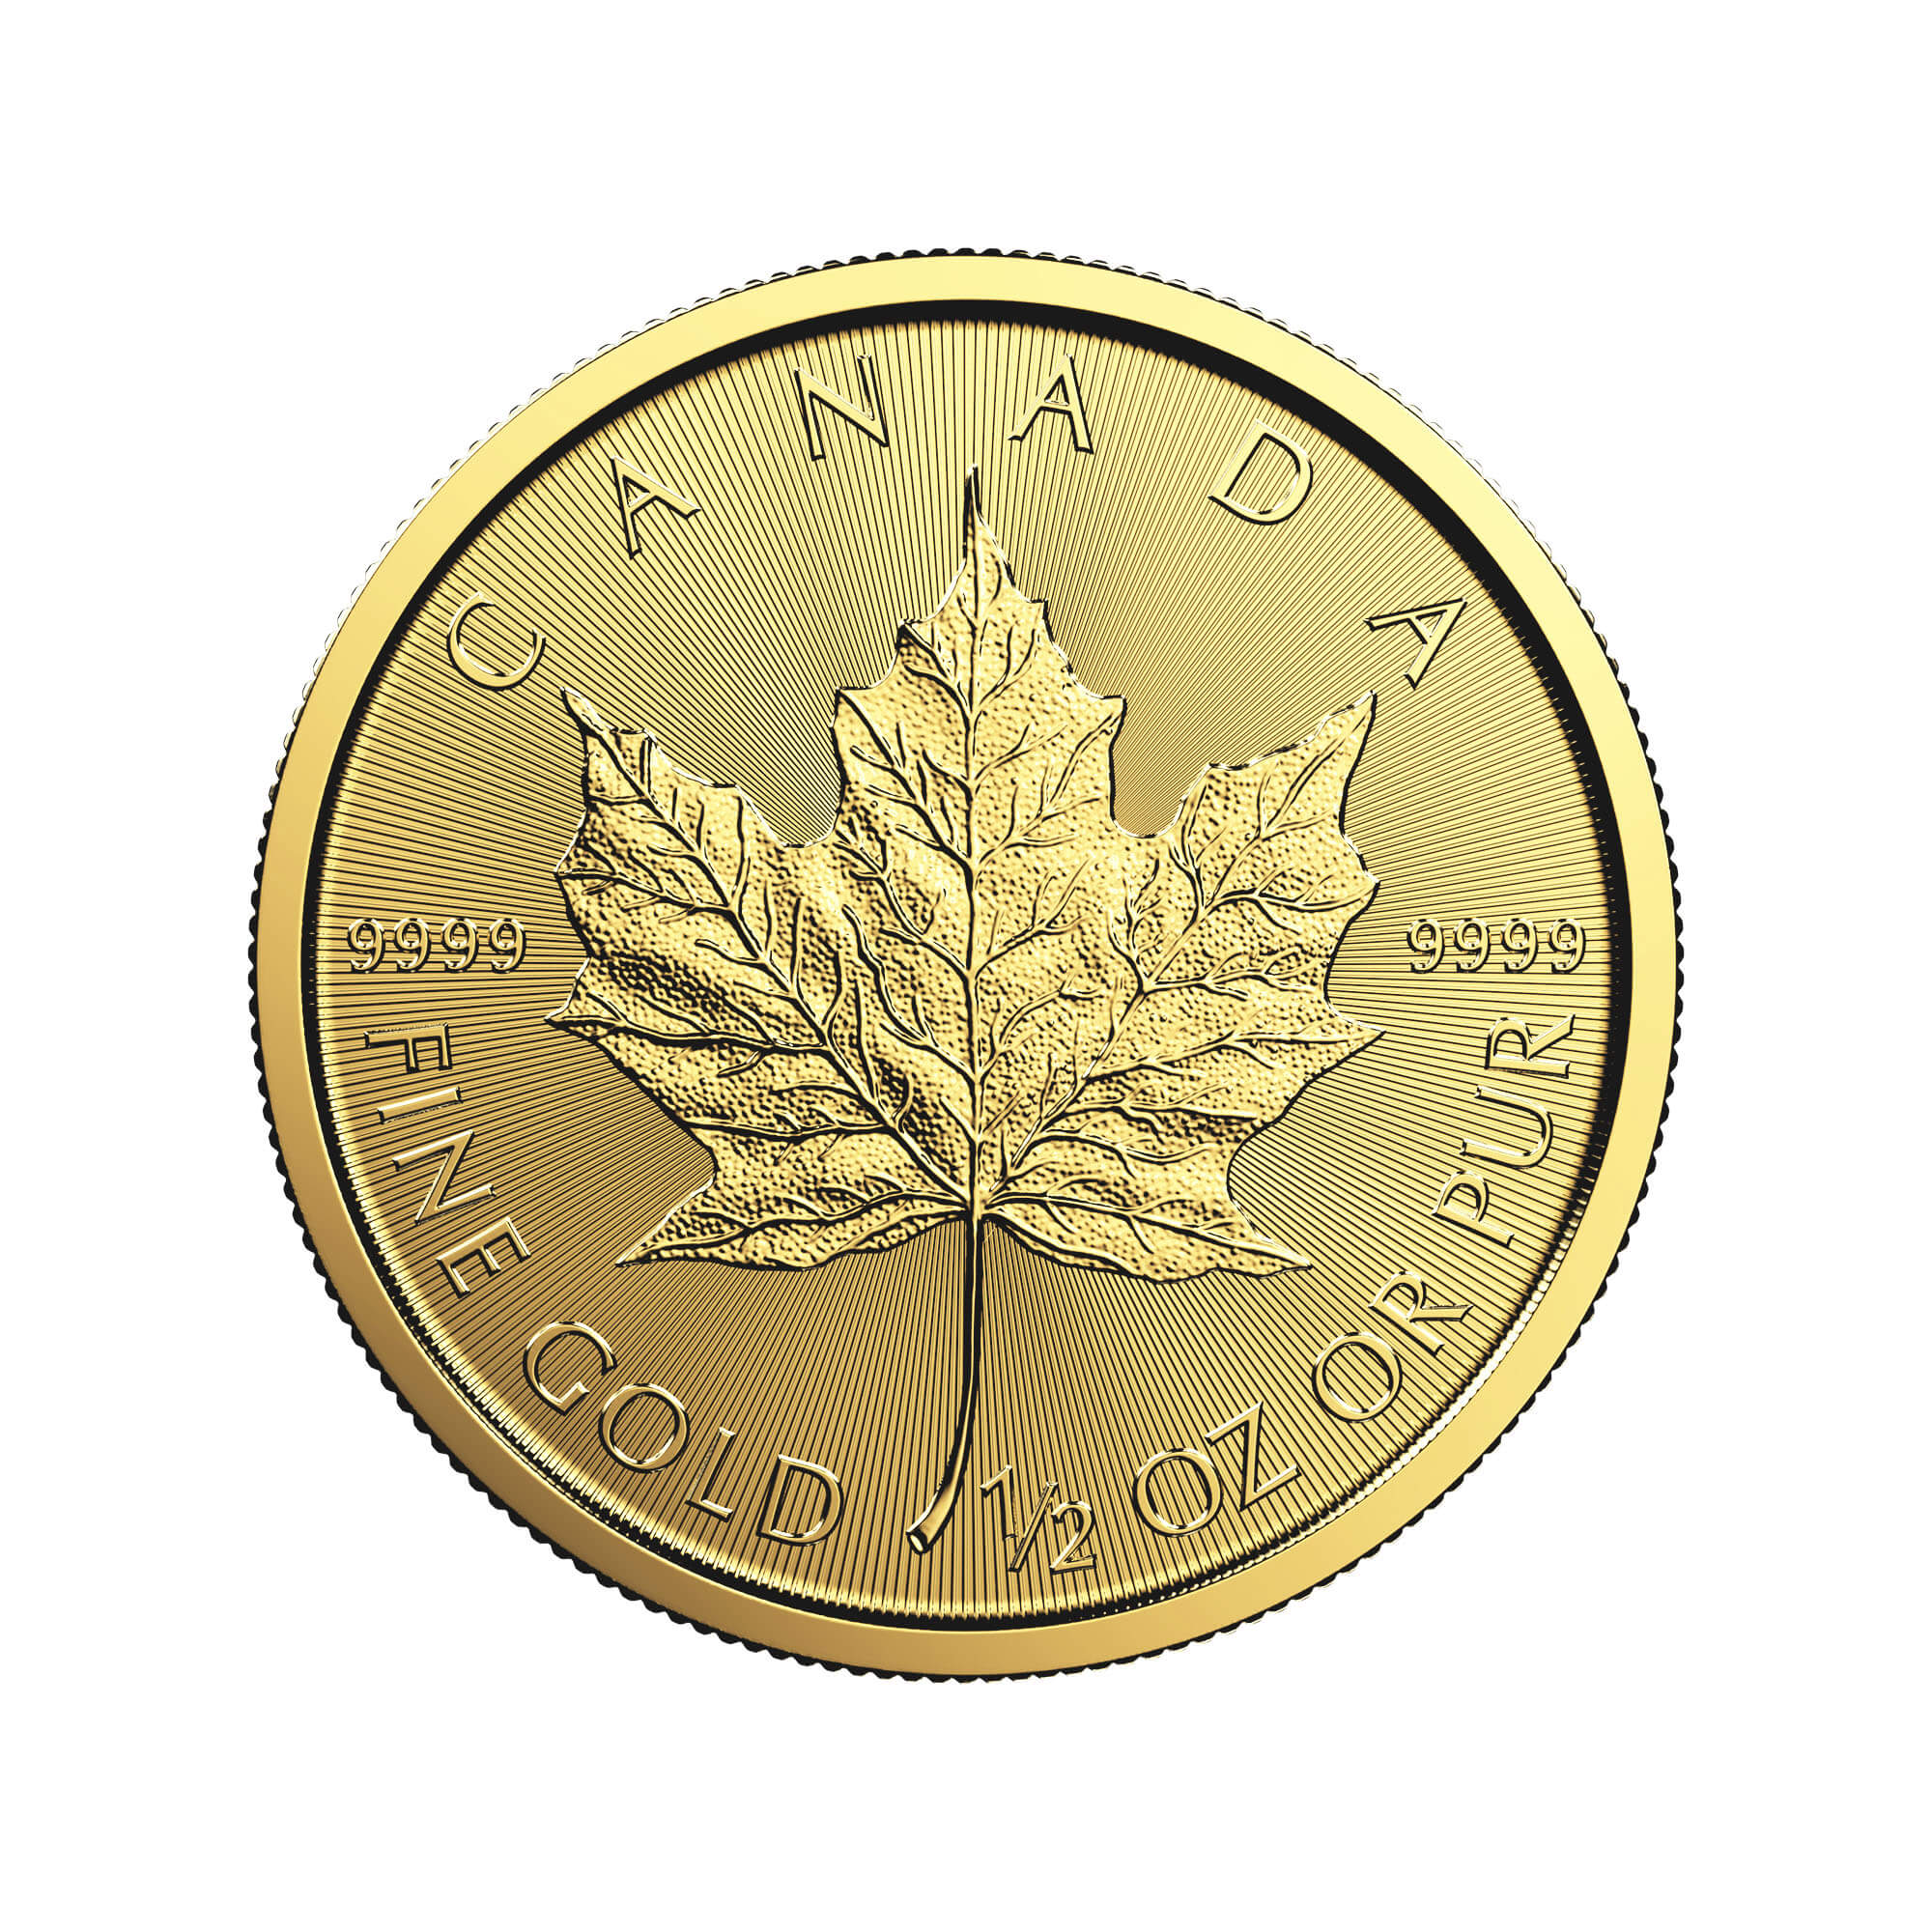 1/2 oz Canadian Gold Maple Leaf Coin (Dates Vary, BU)